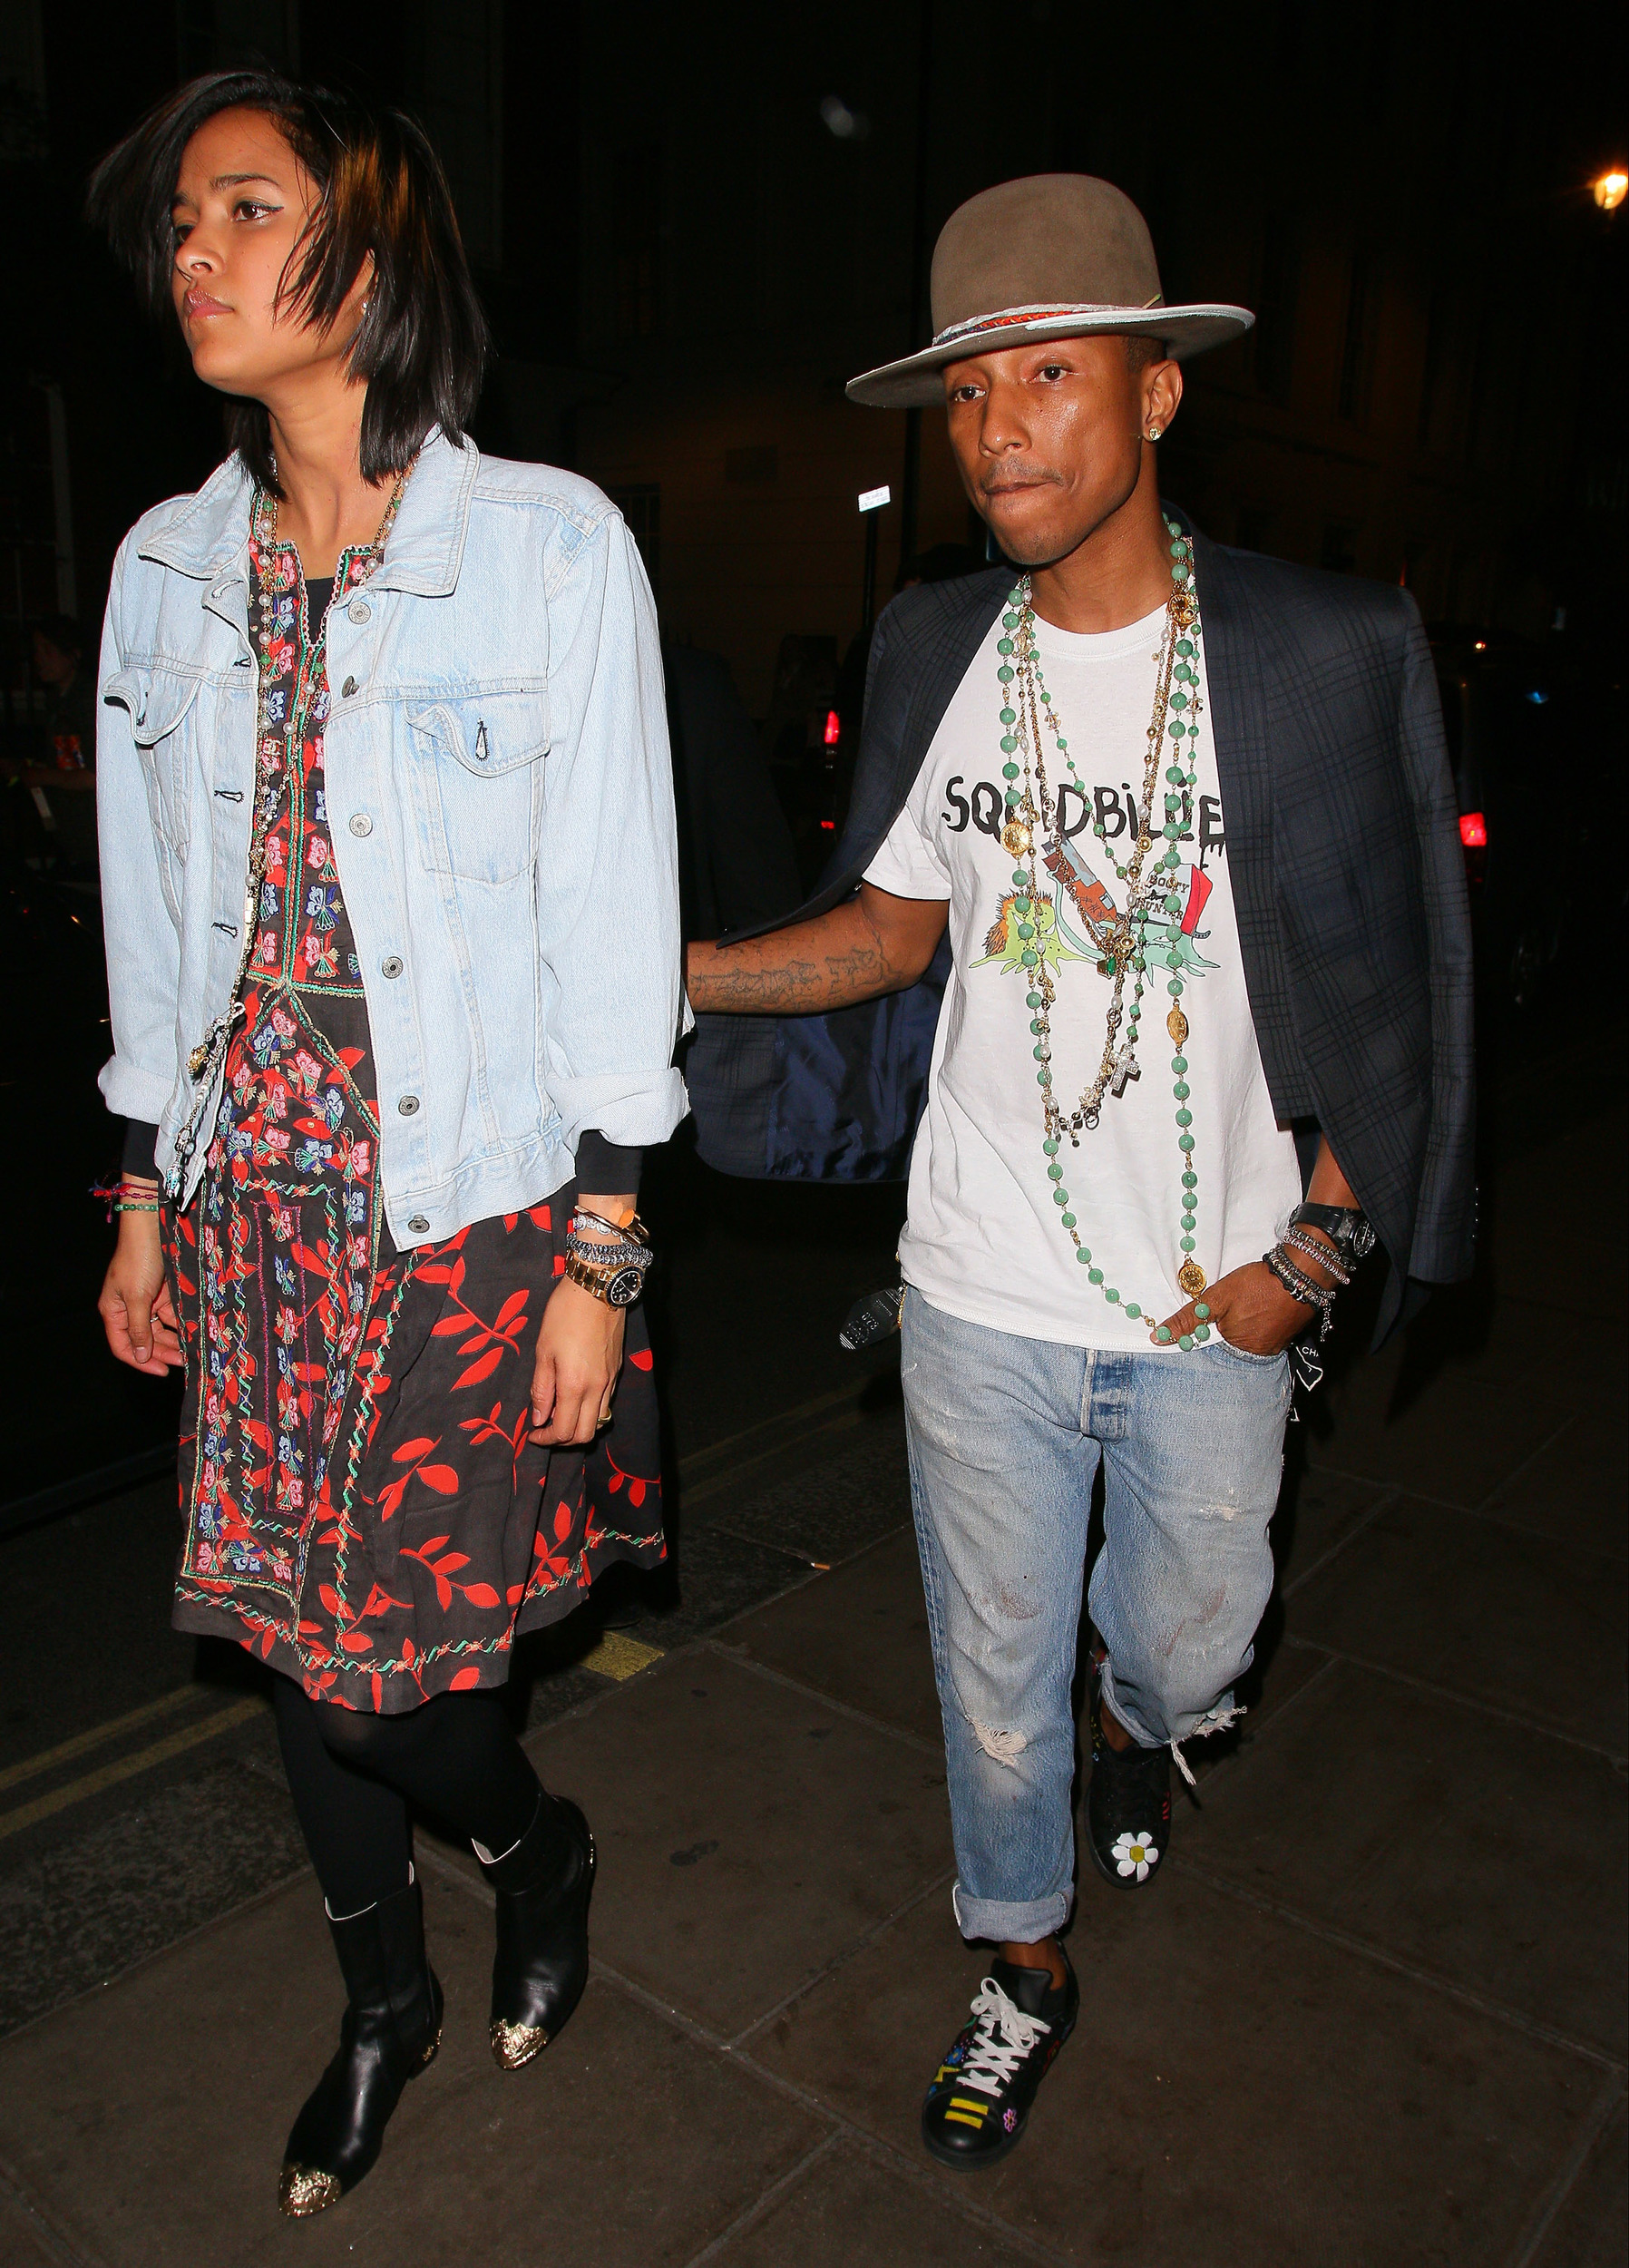 Pharrell dating helen lasichanh